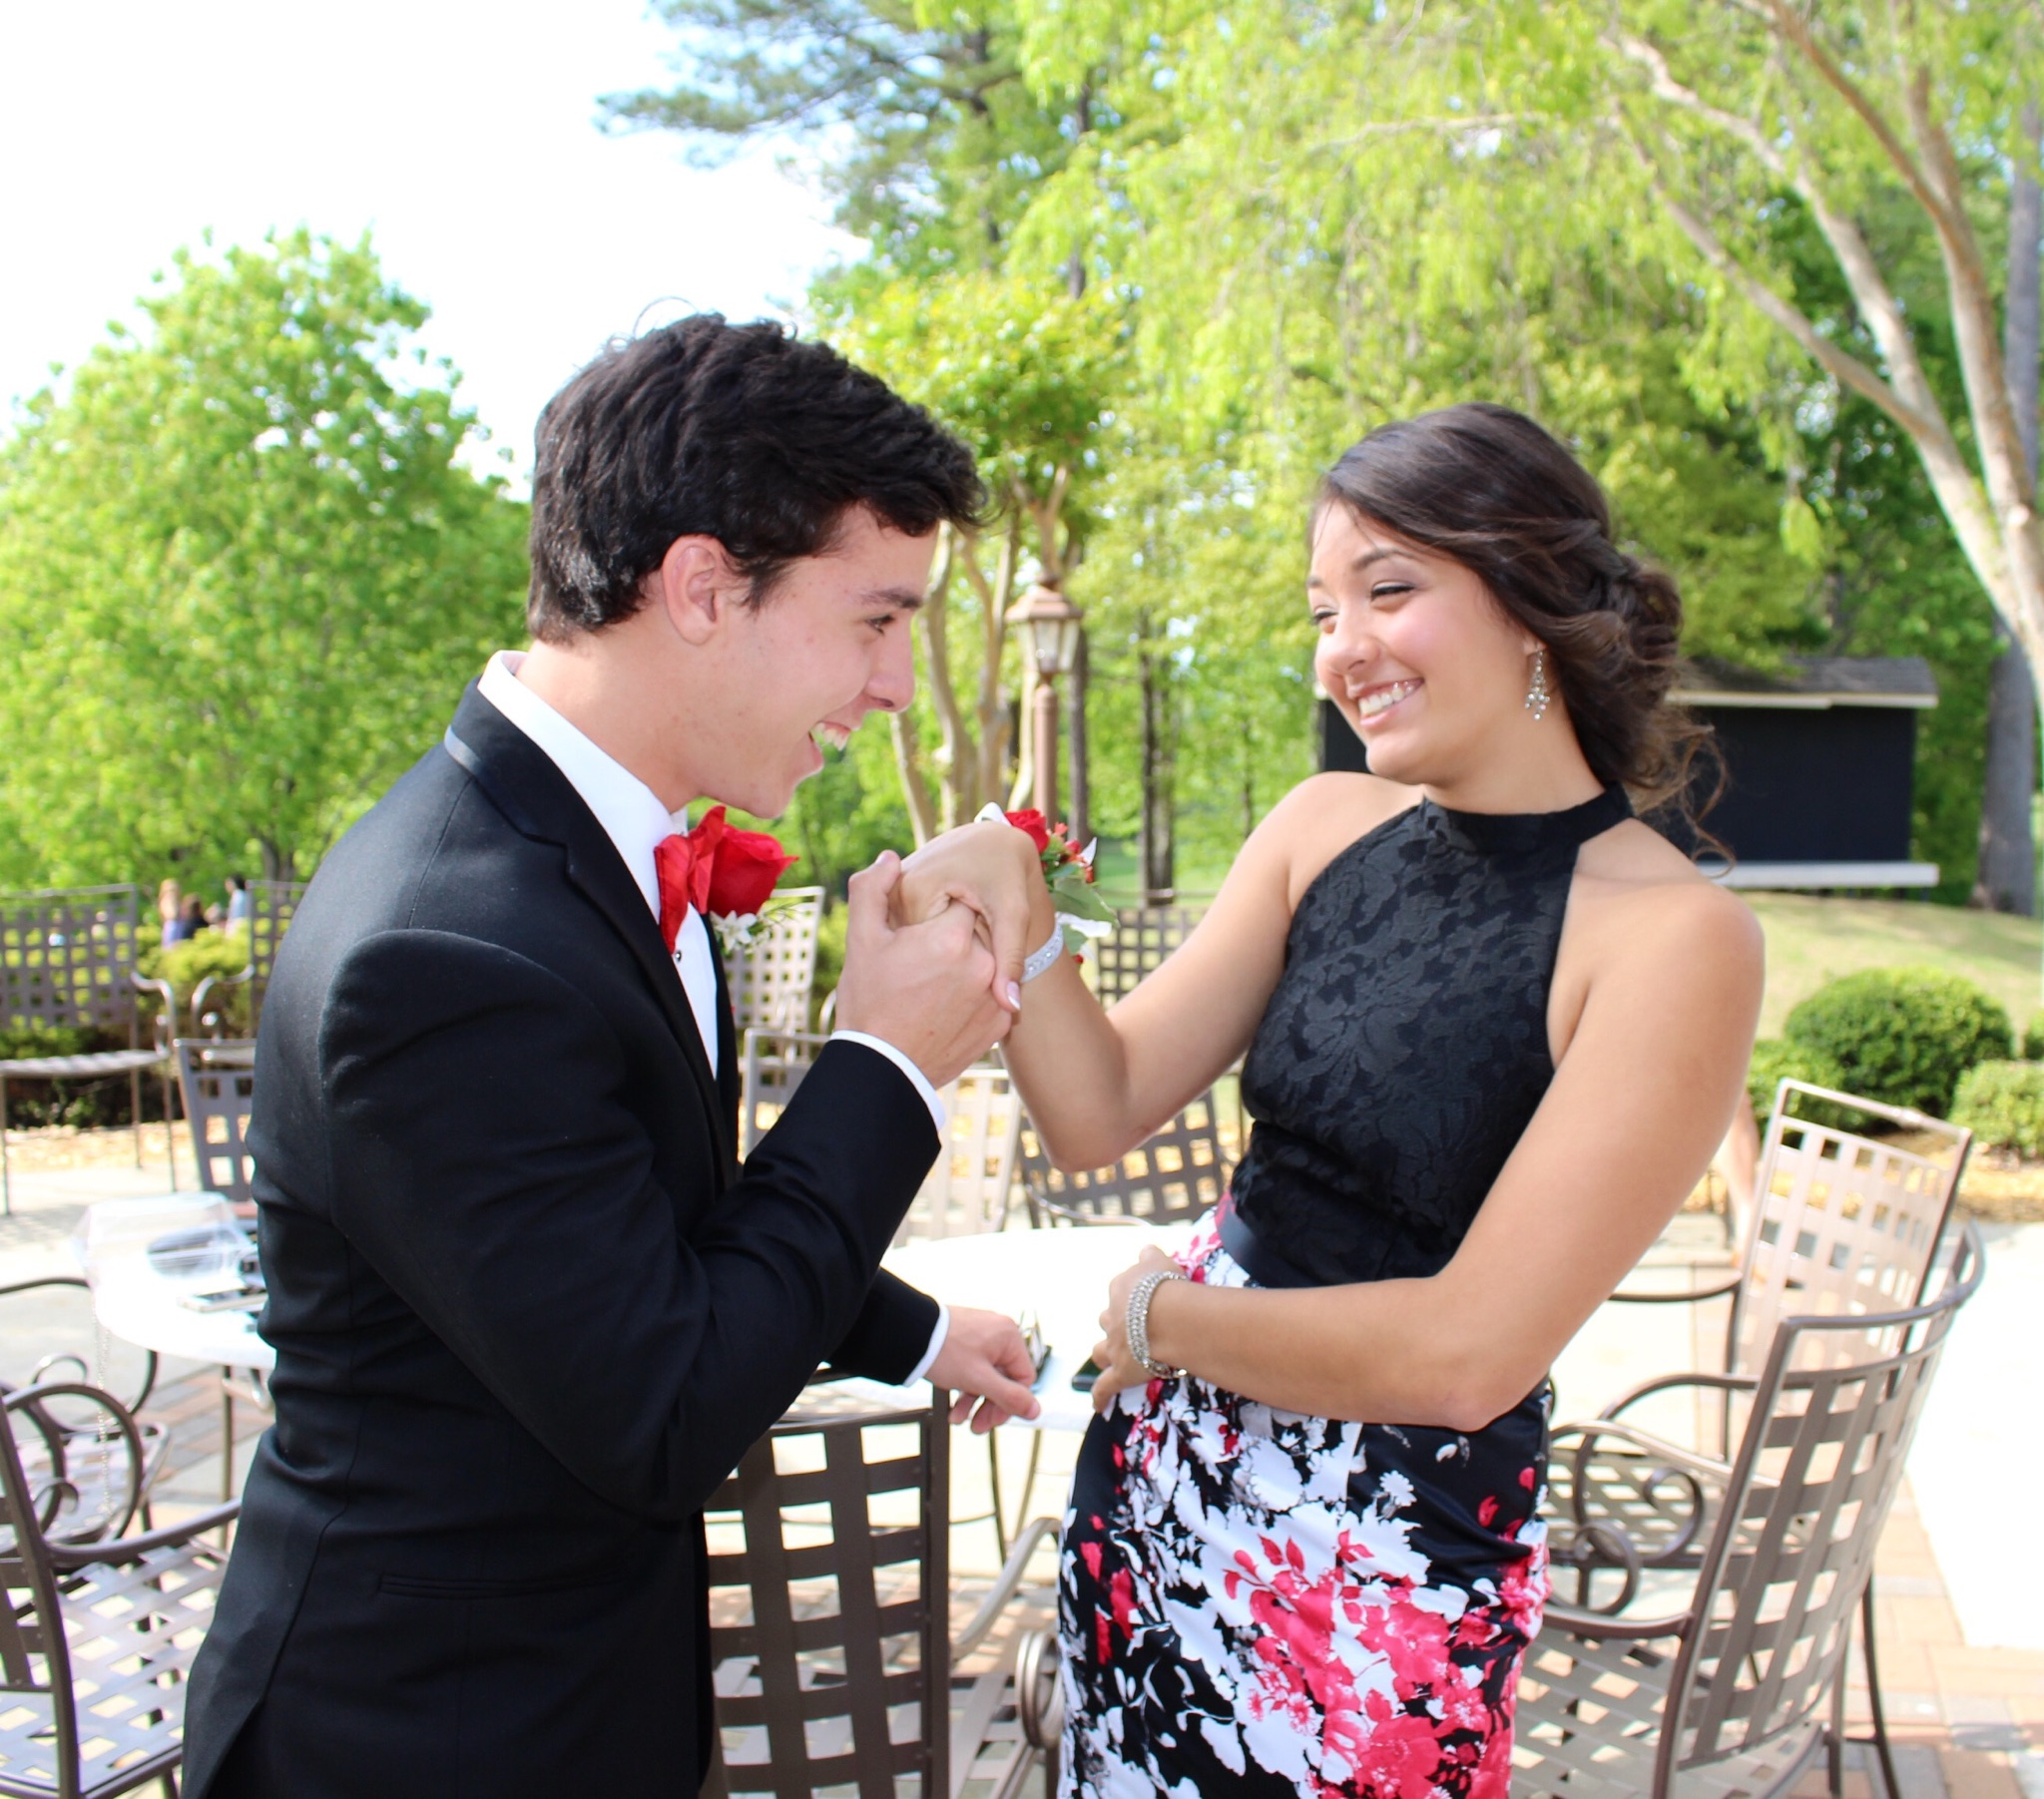 How to Take Prom Pictures photo